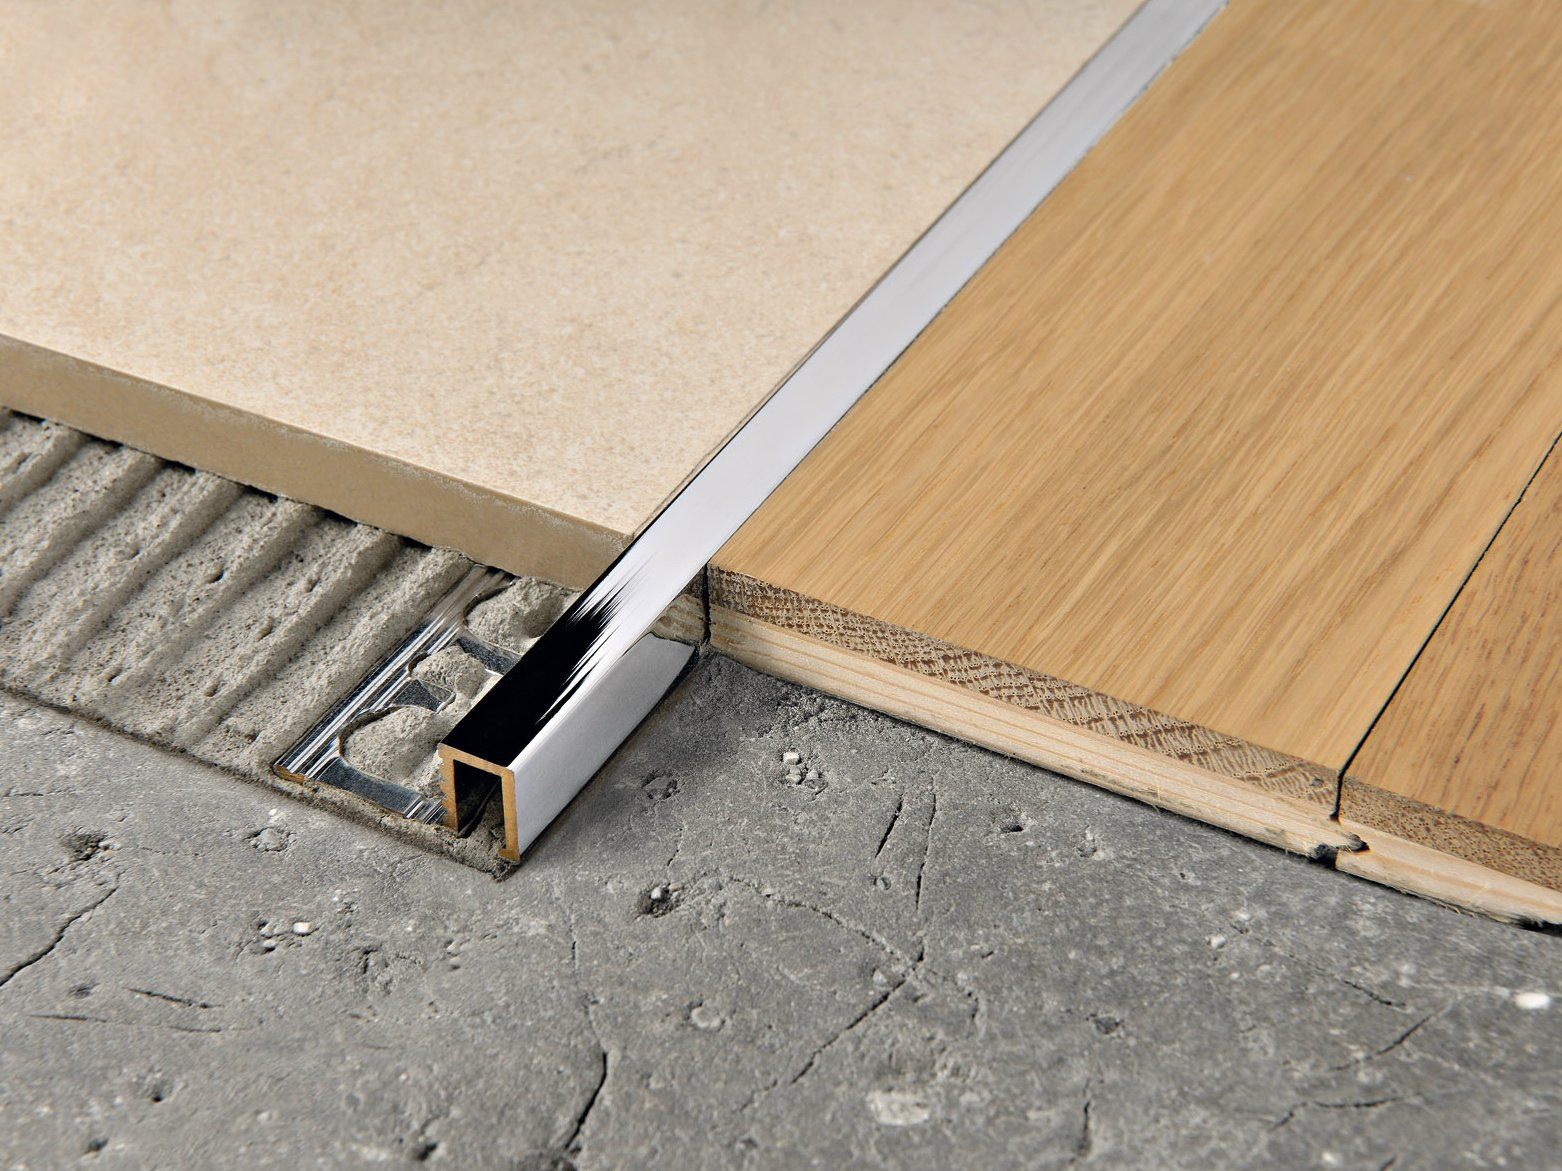 Flooring profile profinal by progress profiles for Joint carrelage sol